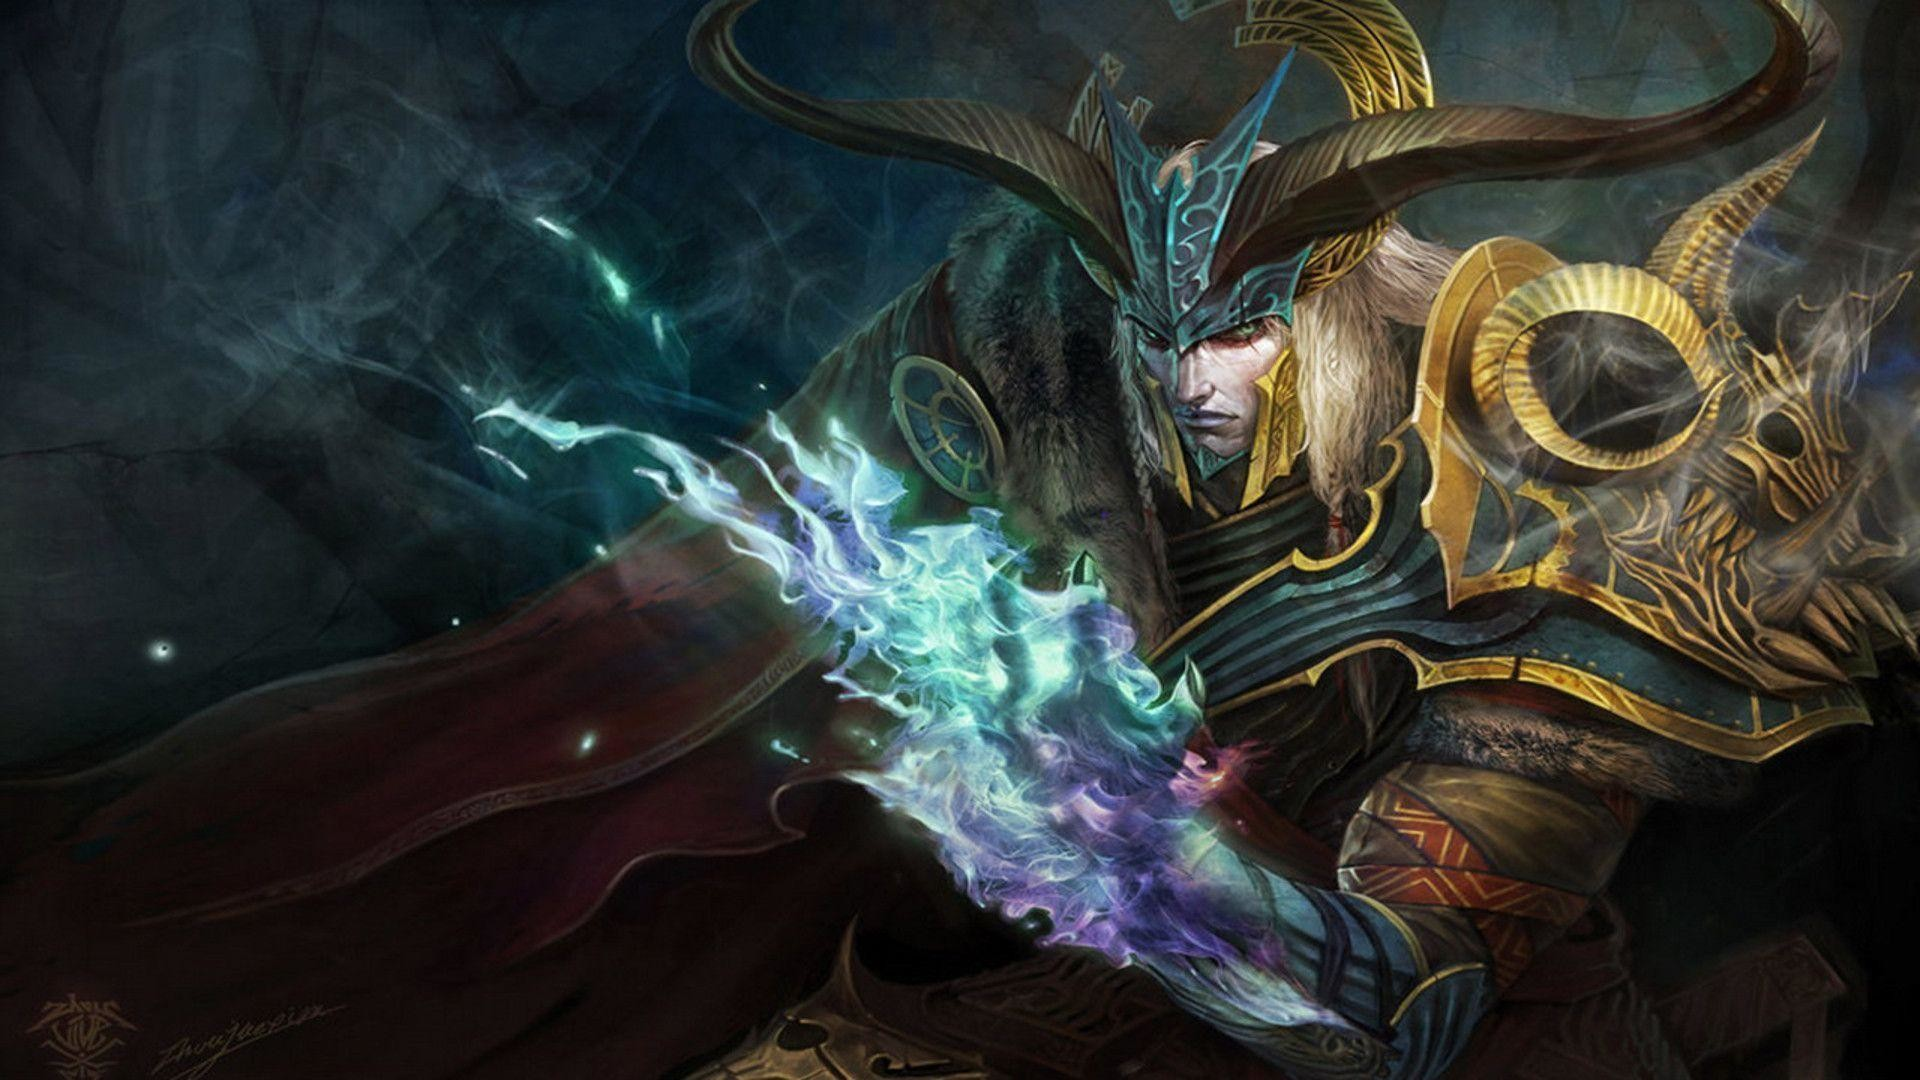 Wallpapers For > World Of Warcraft Wallpaper Druid